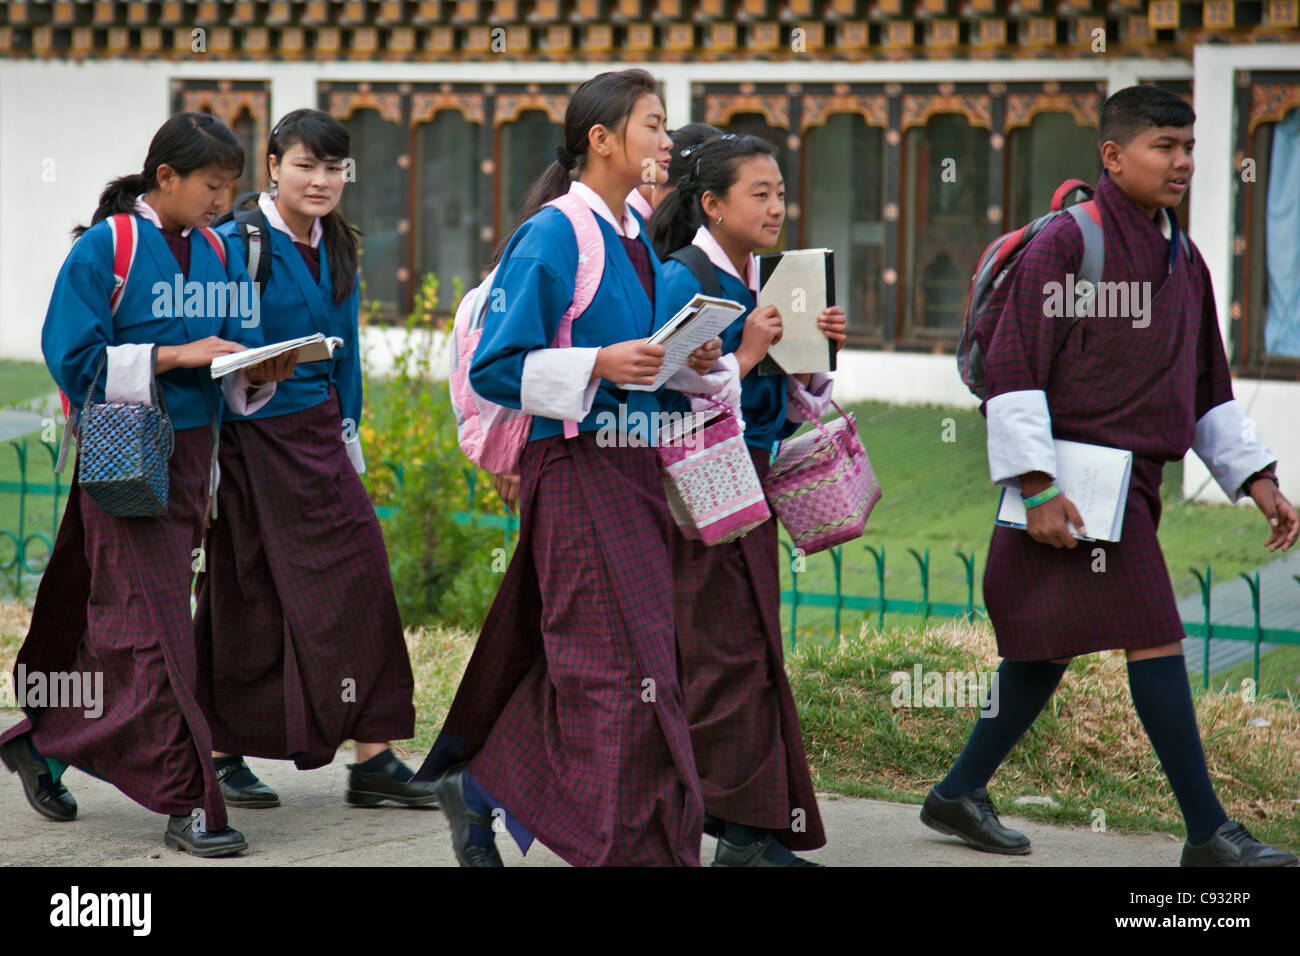 Students walking to college in Thimphu, capital city of the Kingdom of Bhutan. Stock Photo